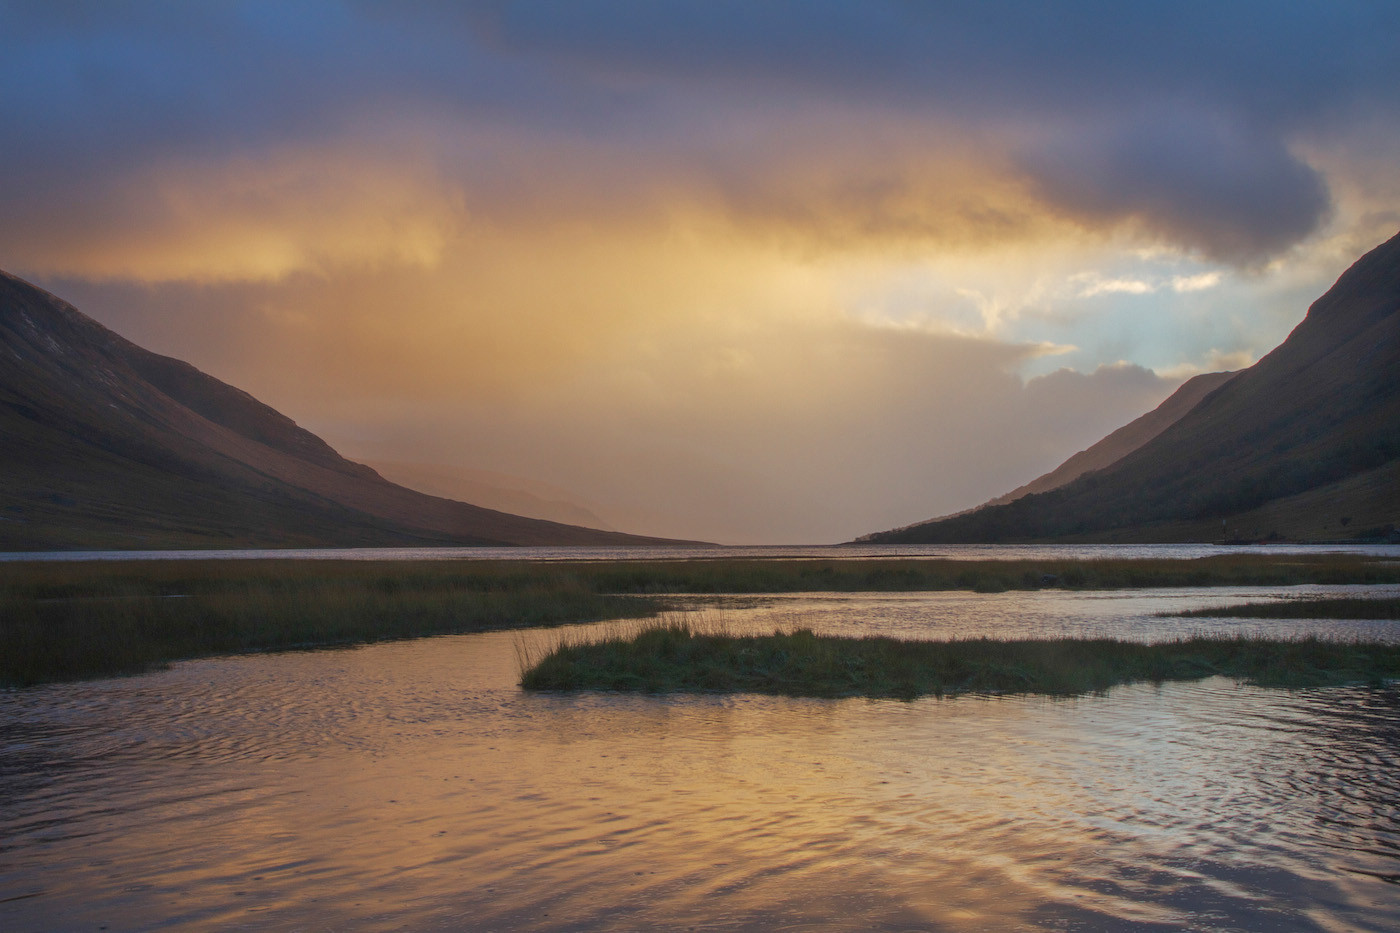 GROUP 1 17 AFTERNOON STORM, LOCH ETIVE by Carole Lewis